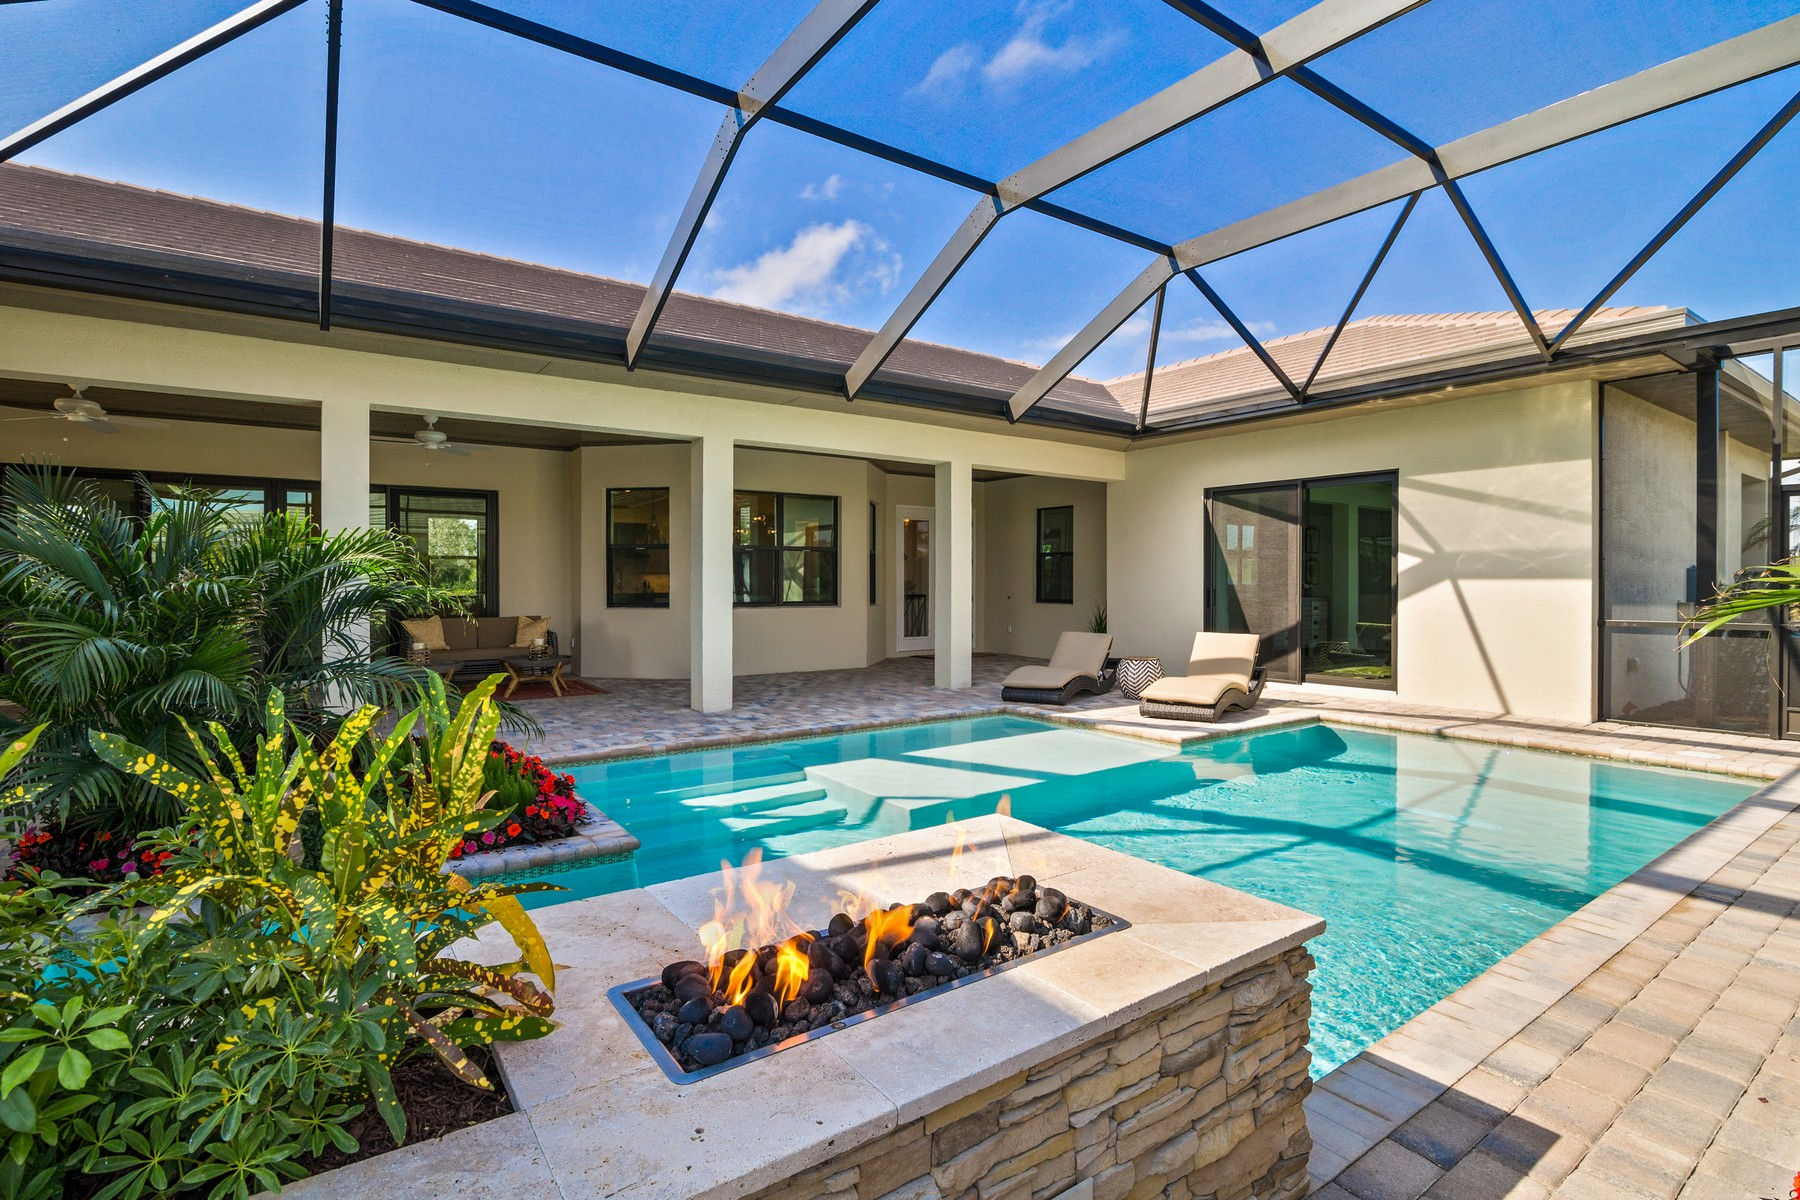 Single Family Home for Sale at Courtyard Home in the Reserve at Grand Harbor 2382 Grand Harbor Reserve Square Vero Beach, Florida 32967 United States